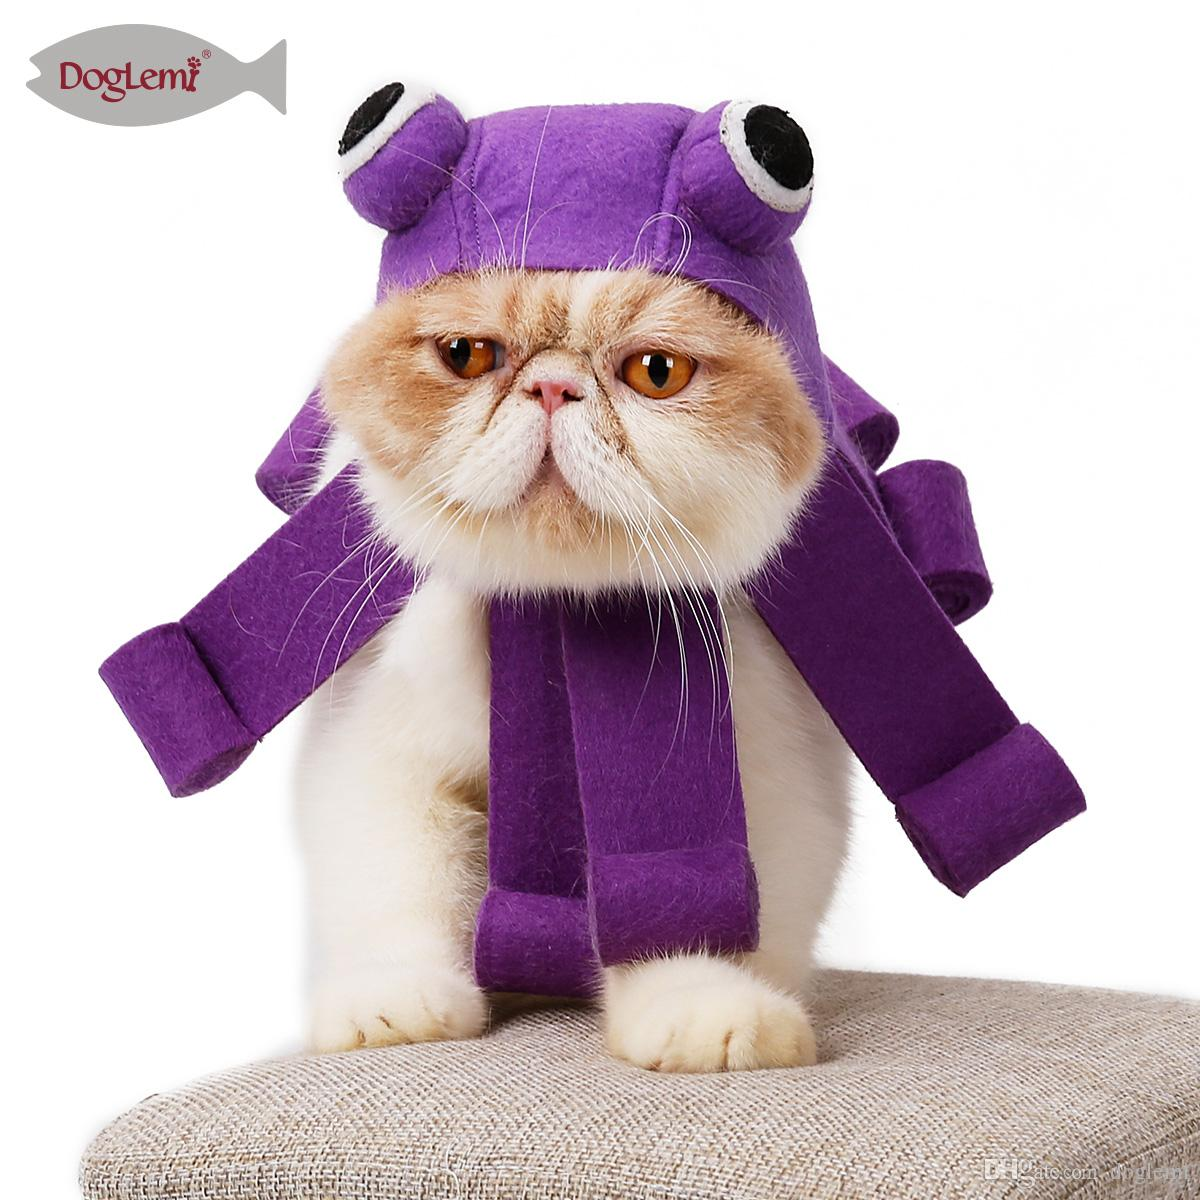 Doglemi Octopus Design Cat Cosplay Hat Halloween Christmas Pet Cat